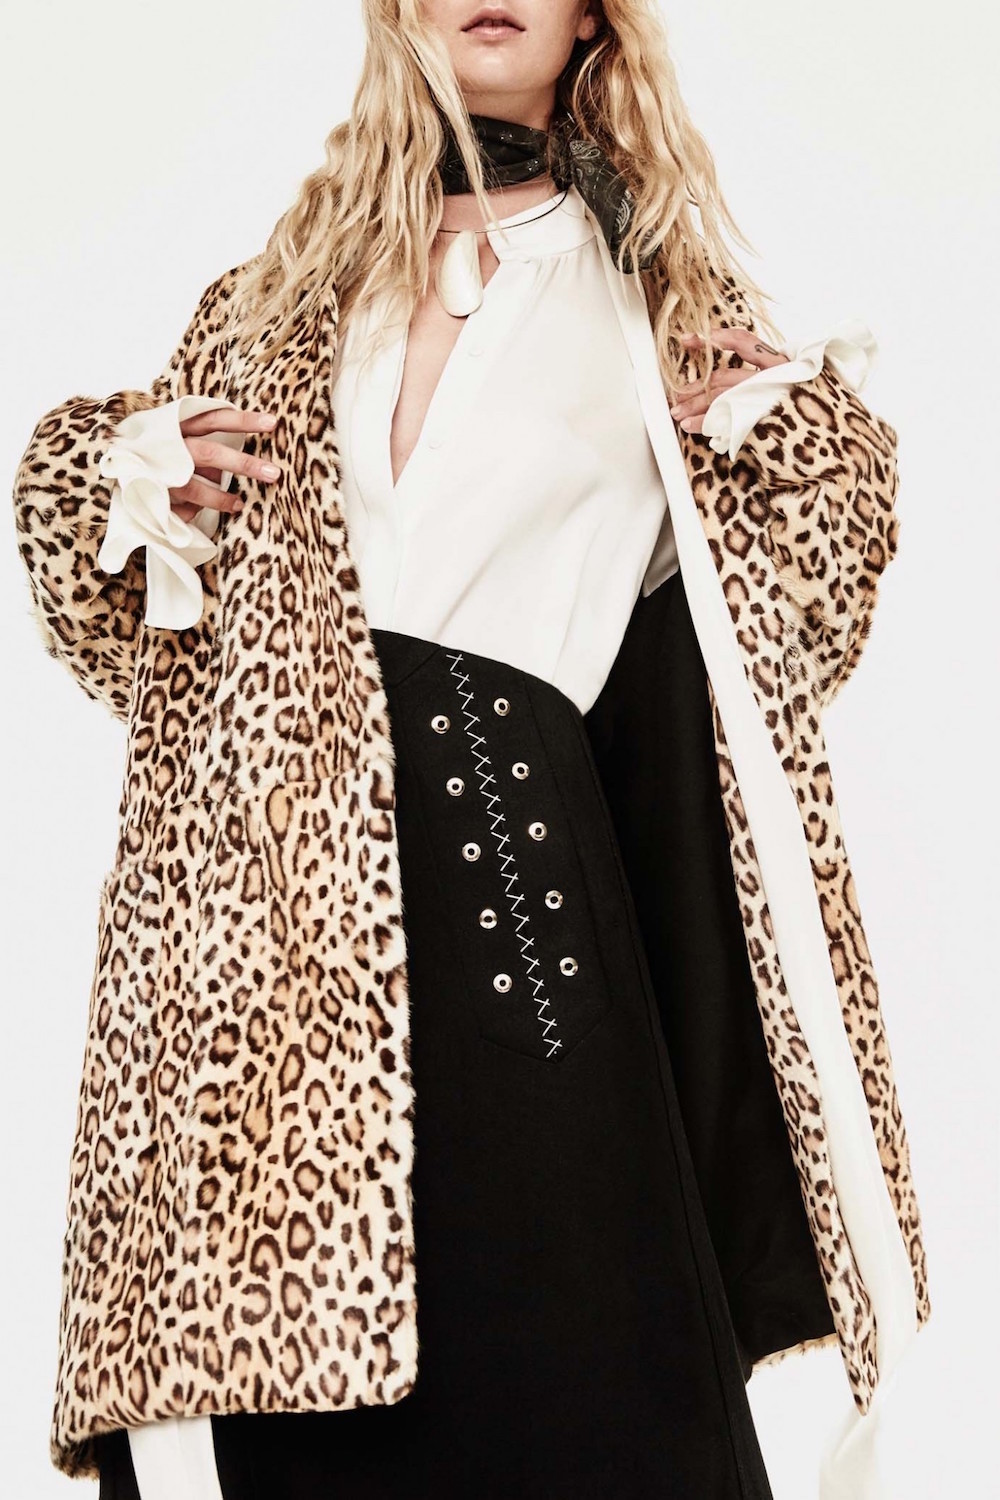 ellery, sarah starkey, pre fall 2016, leopard, trend, oracle fox